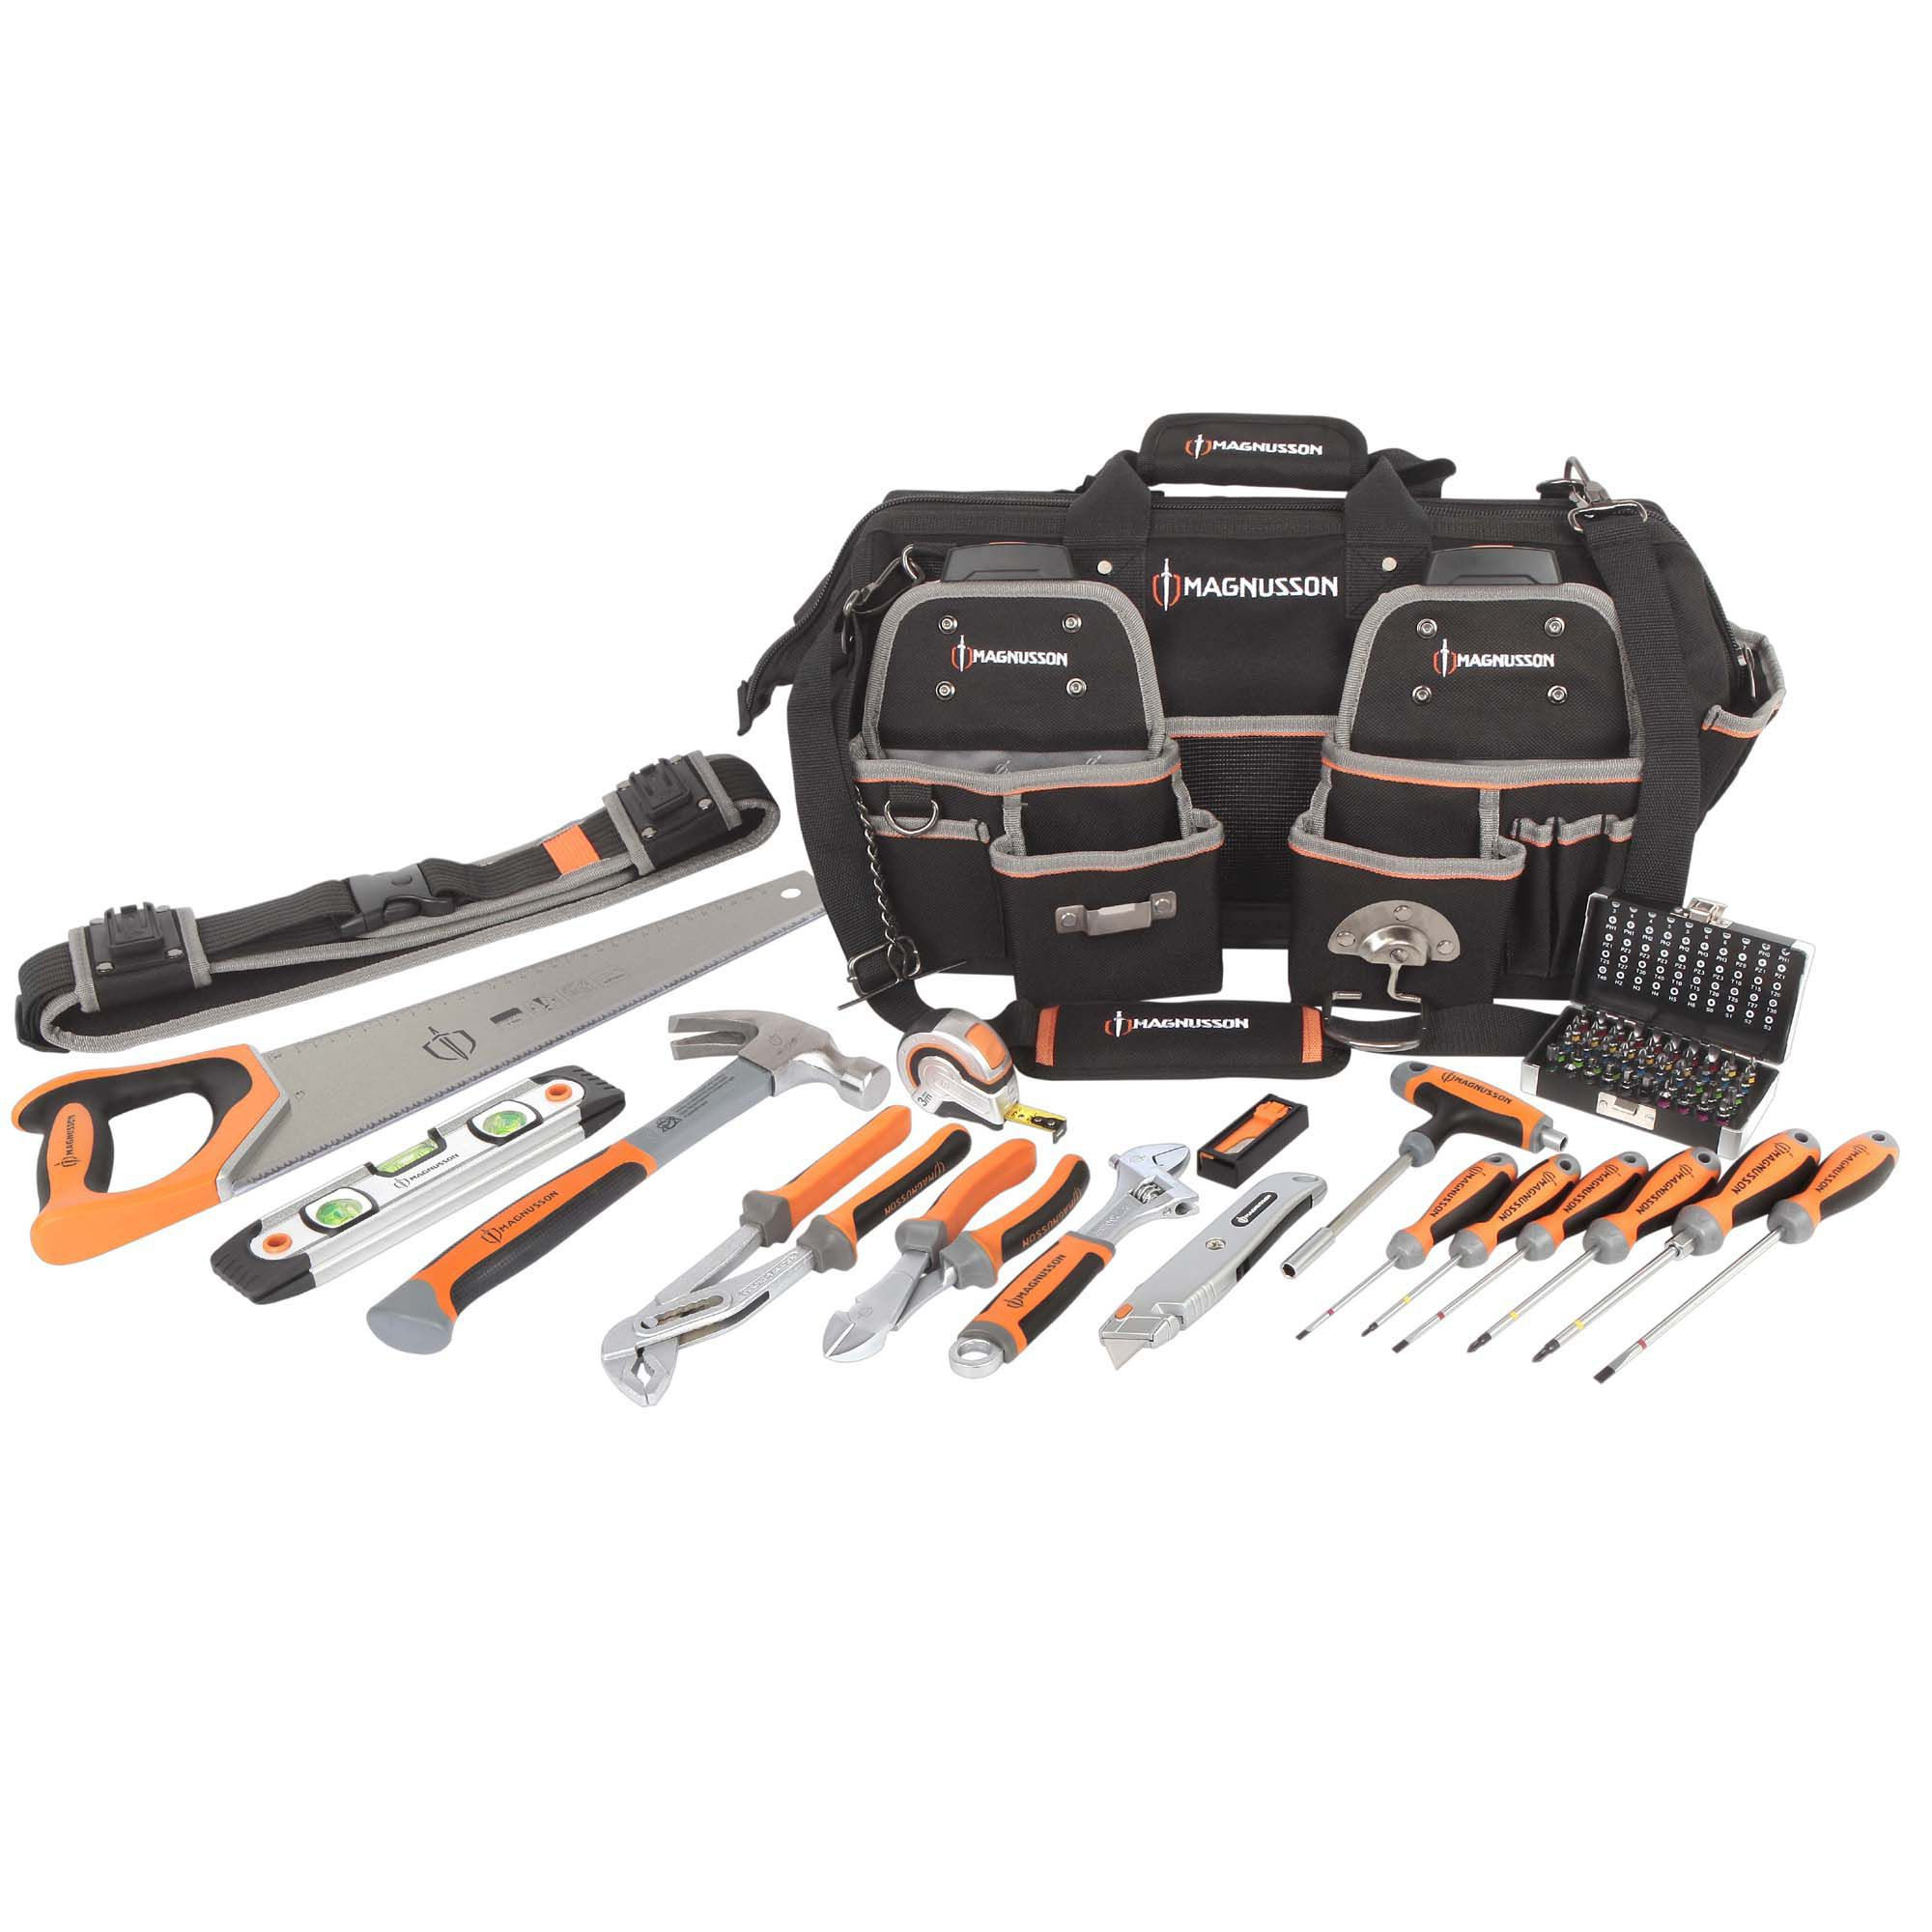 Magnusson 66 Piece Heavy Duty Tool Kit